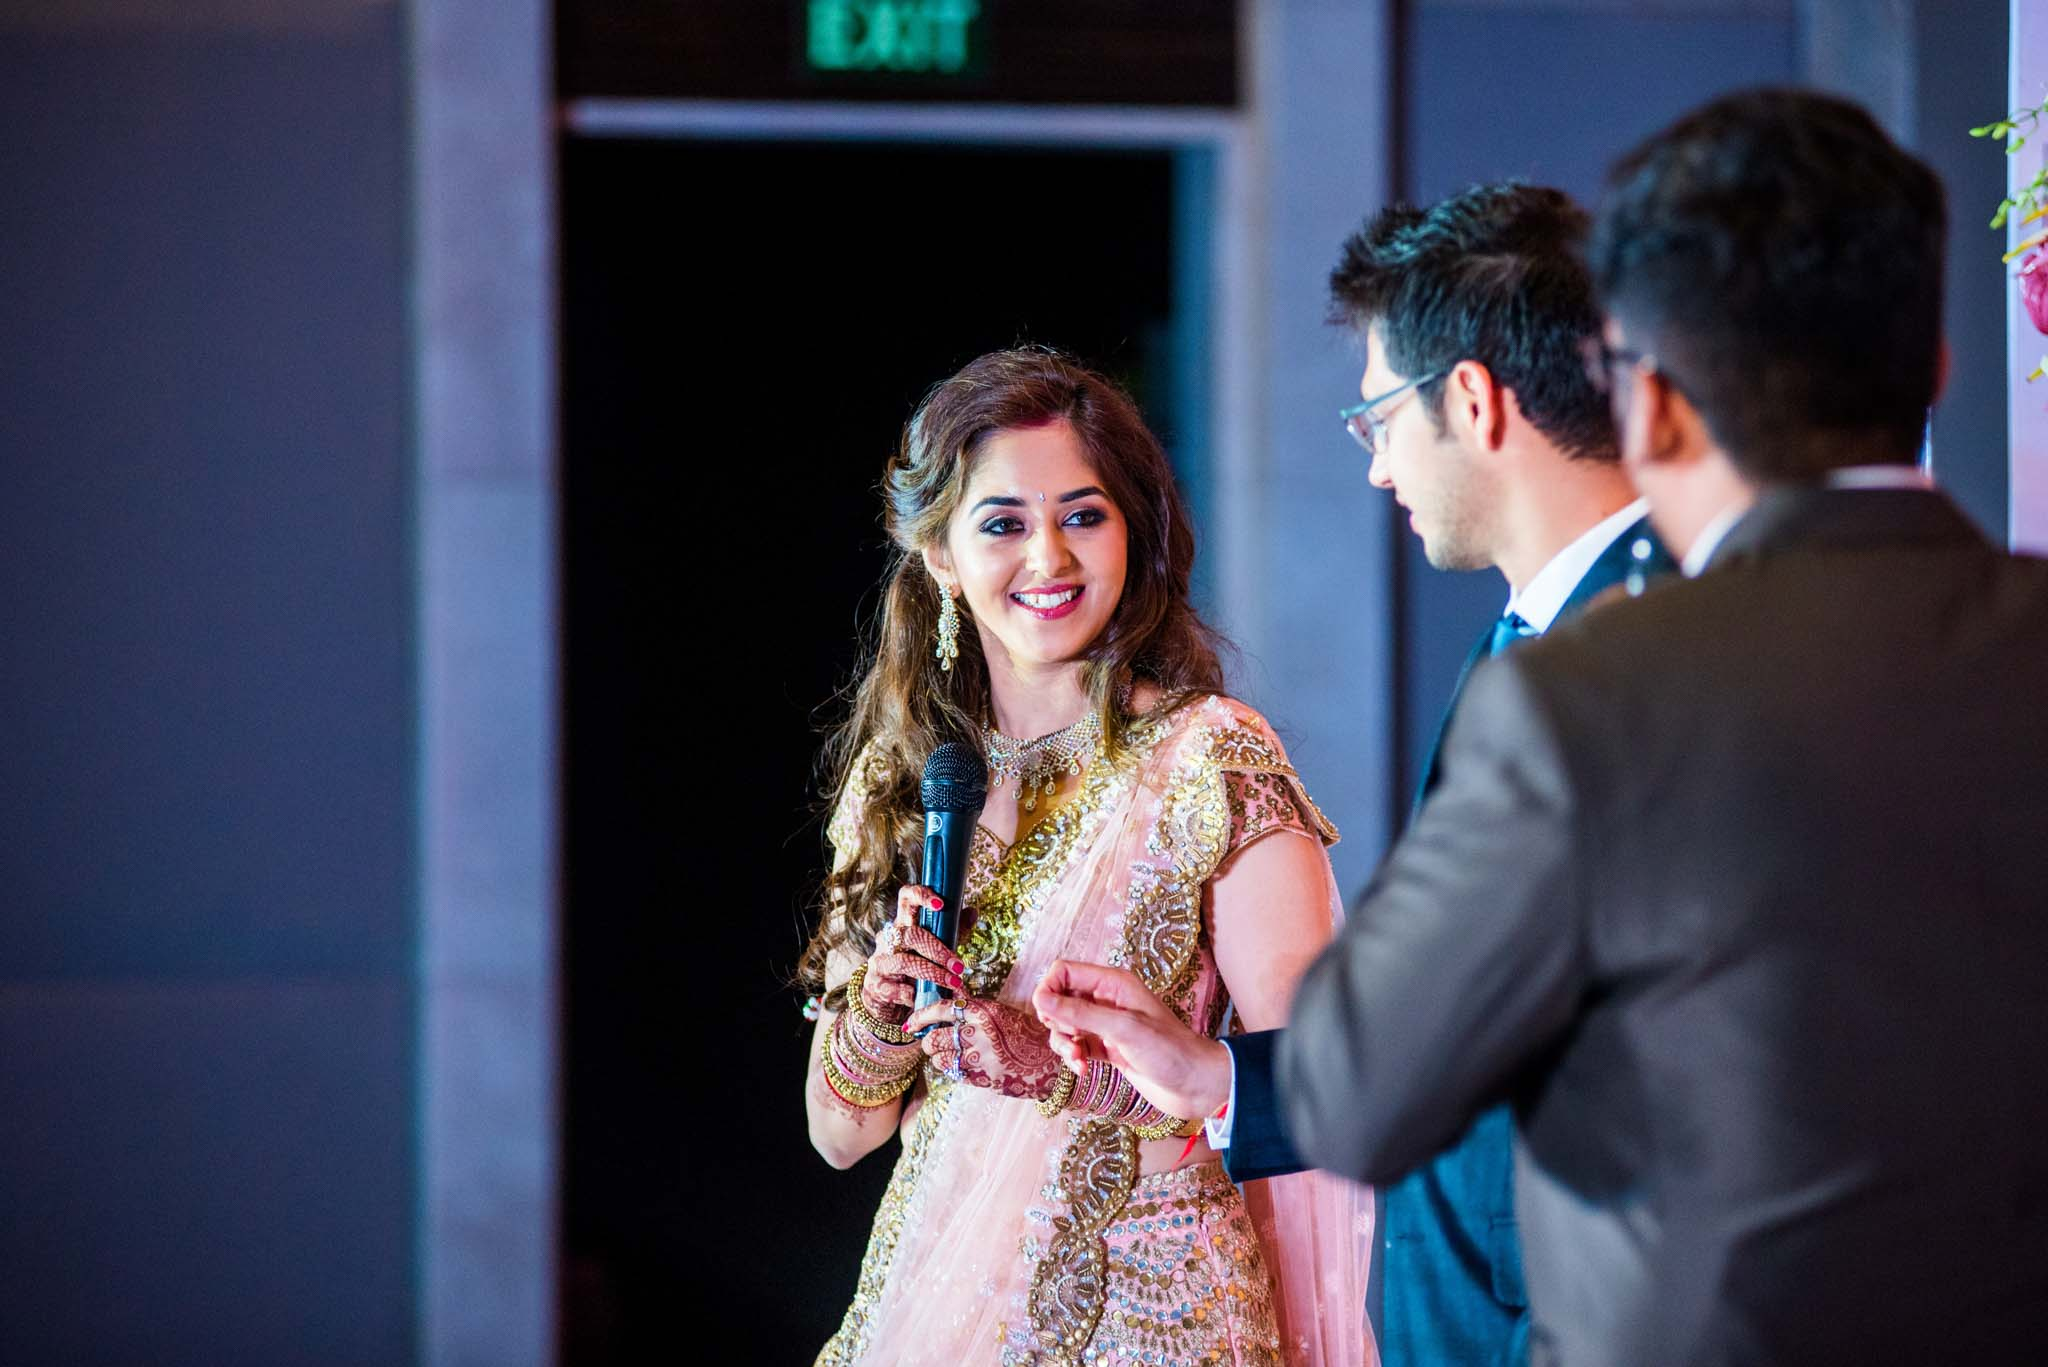 StRegis-Palladium-Mumbai-Candid-Wedding-Photography-61